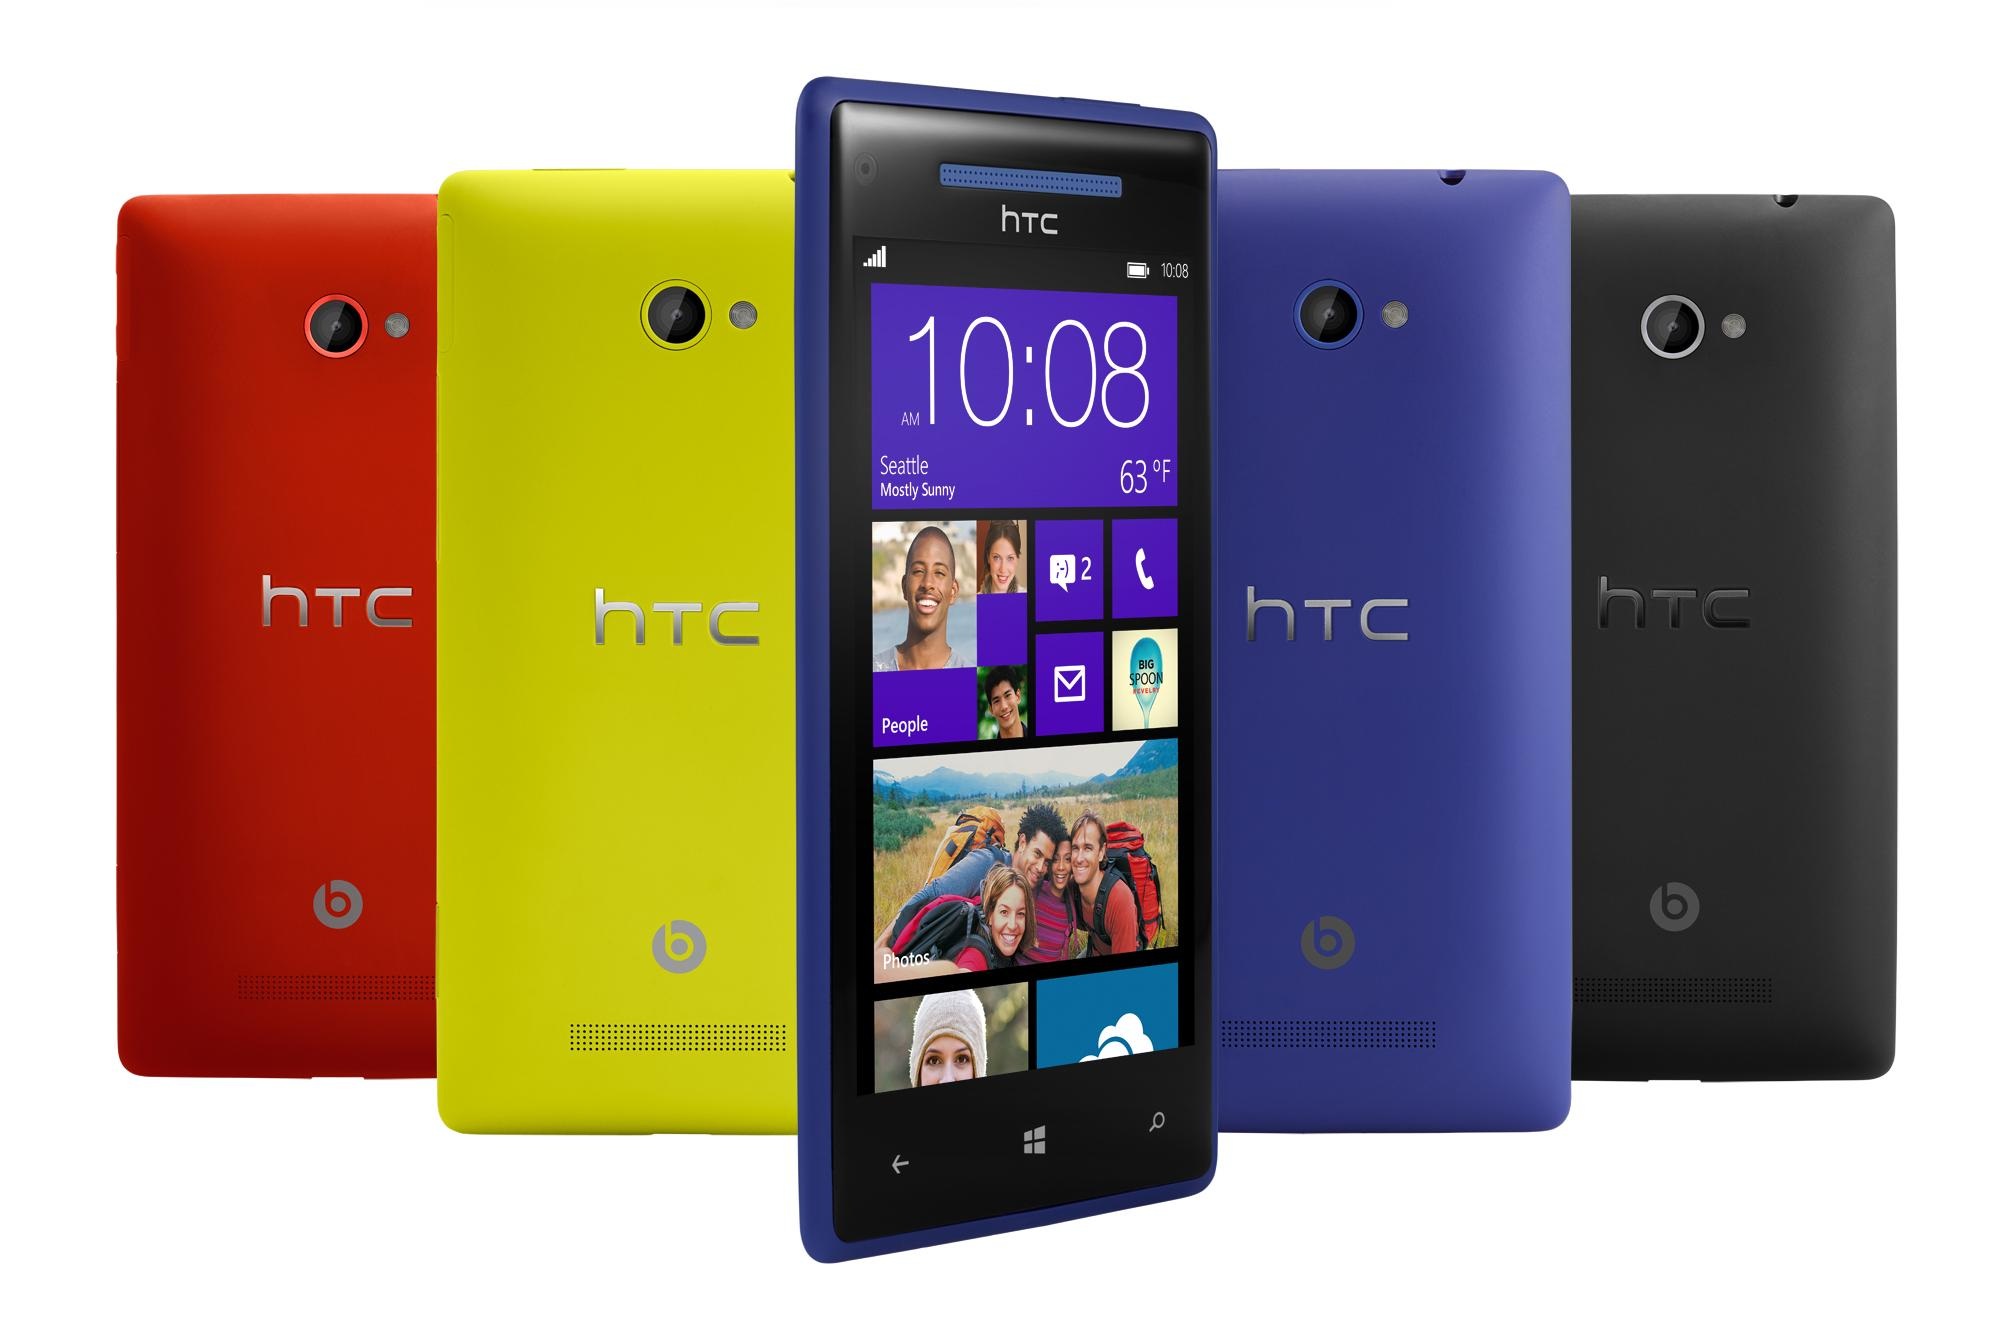 Microsoft Wants That HTC Add Windows Phone to Your Phones Android, According to Bloomberg